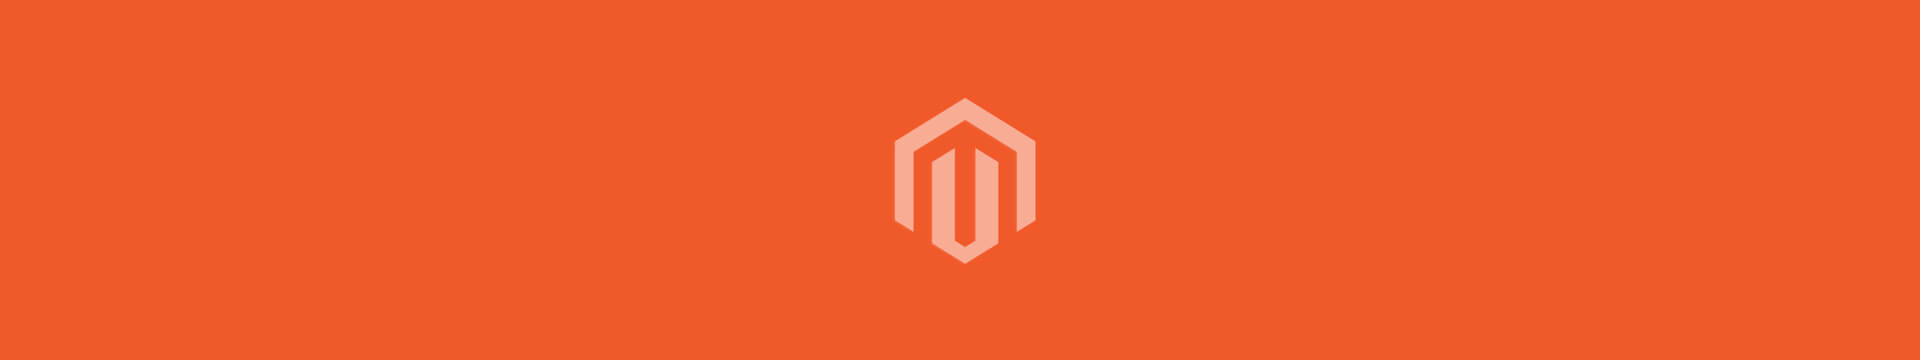 Magento confirmed as the top ecommerce platform of 2014